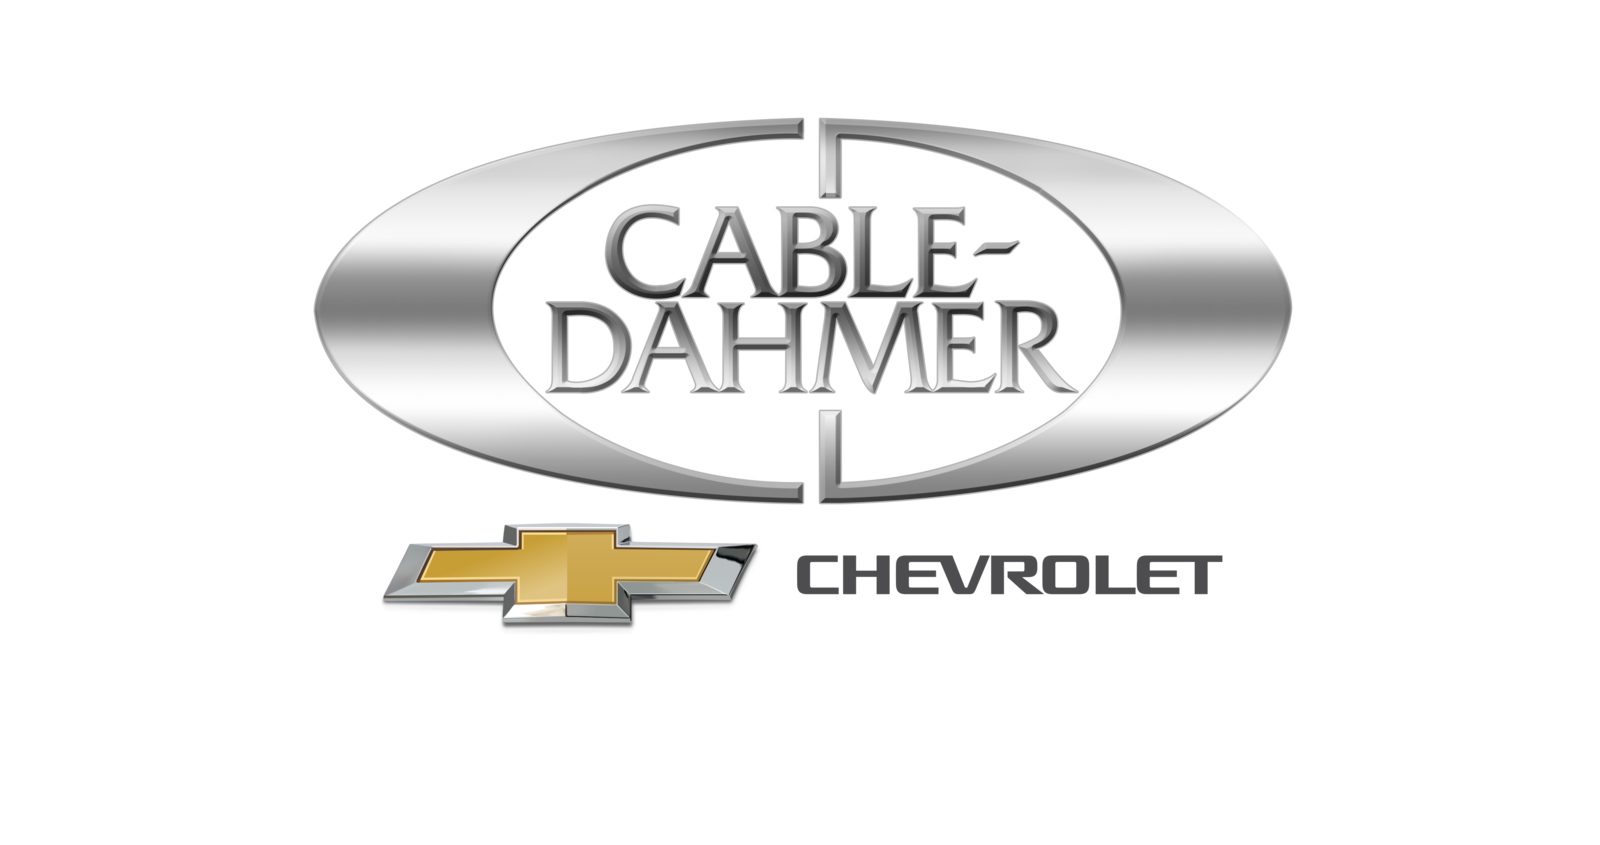 Cable Dahmer Chevy >> Cable Dahmer Chevy 2020 Top Car Models